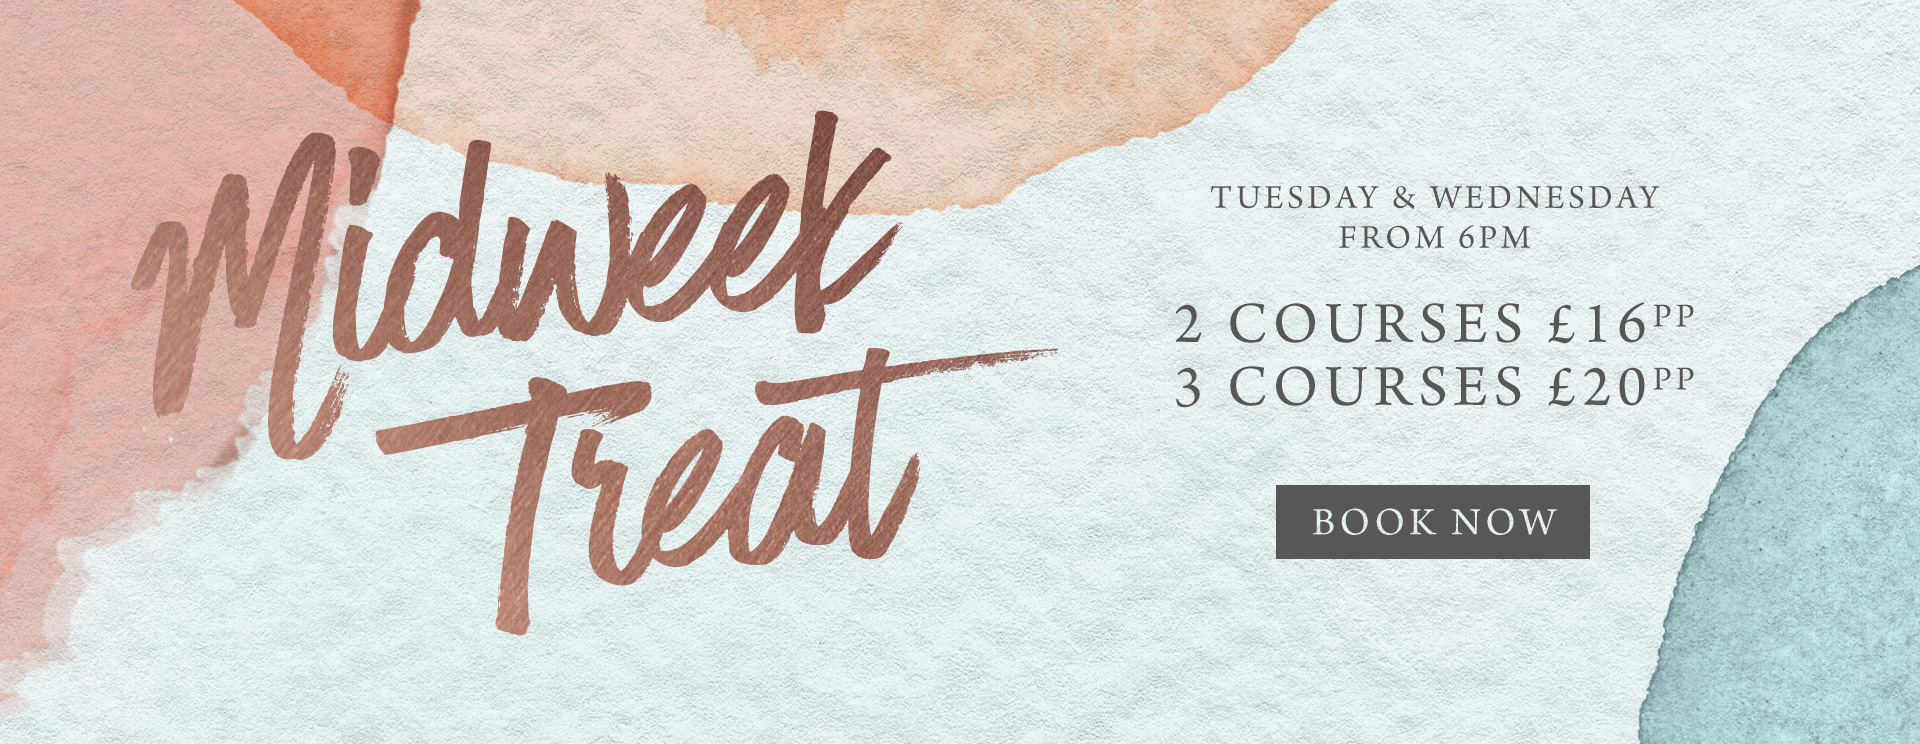 Midweek treat at The Green House - Book now